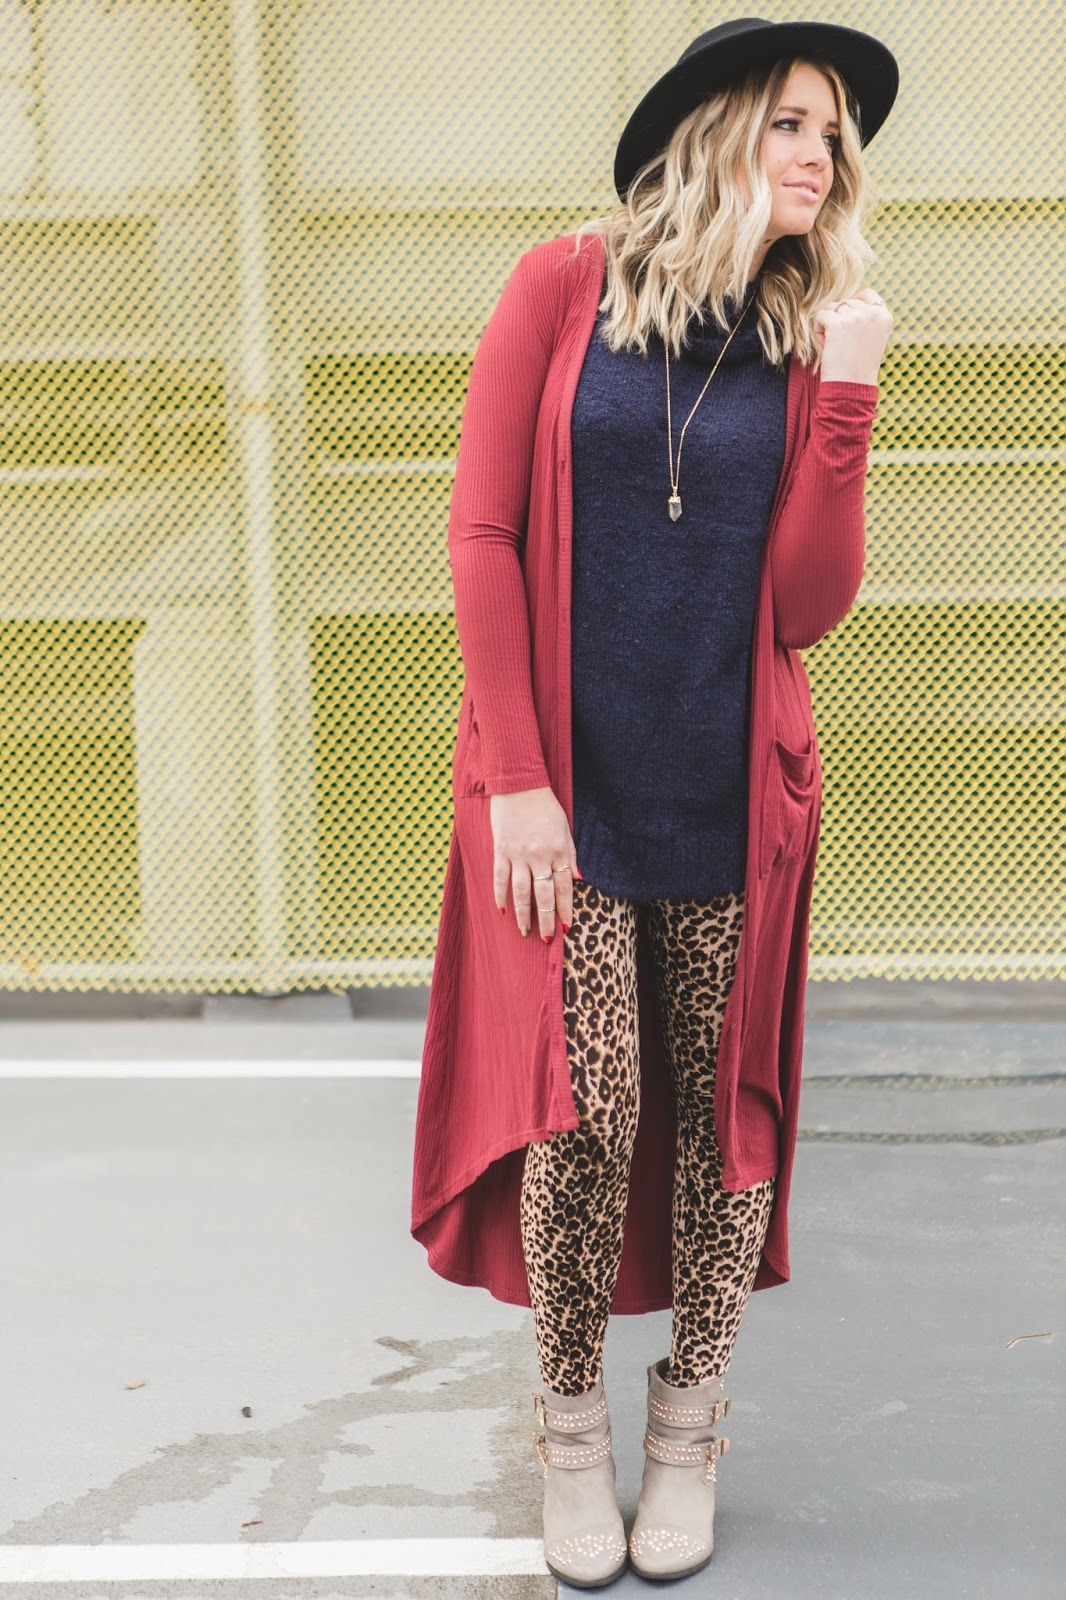 Utah fashion Blogger, Modesty, Leopard Leggings